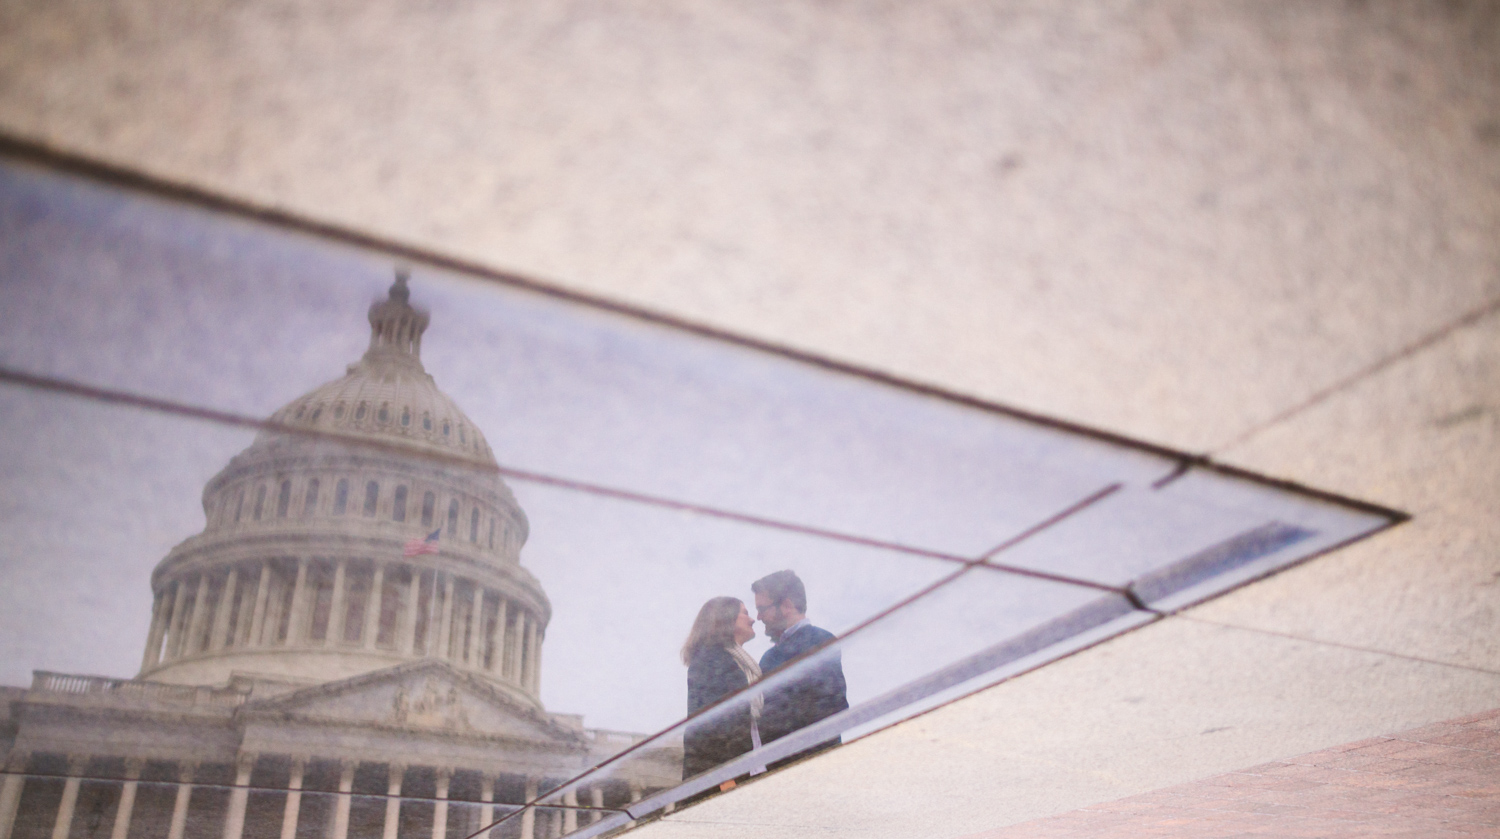 087 - washington dc wedding photographer engagement session at dc capitol.jpg